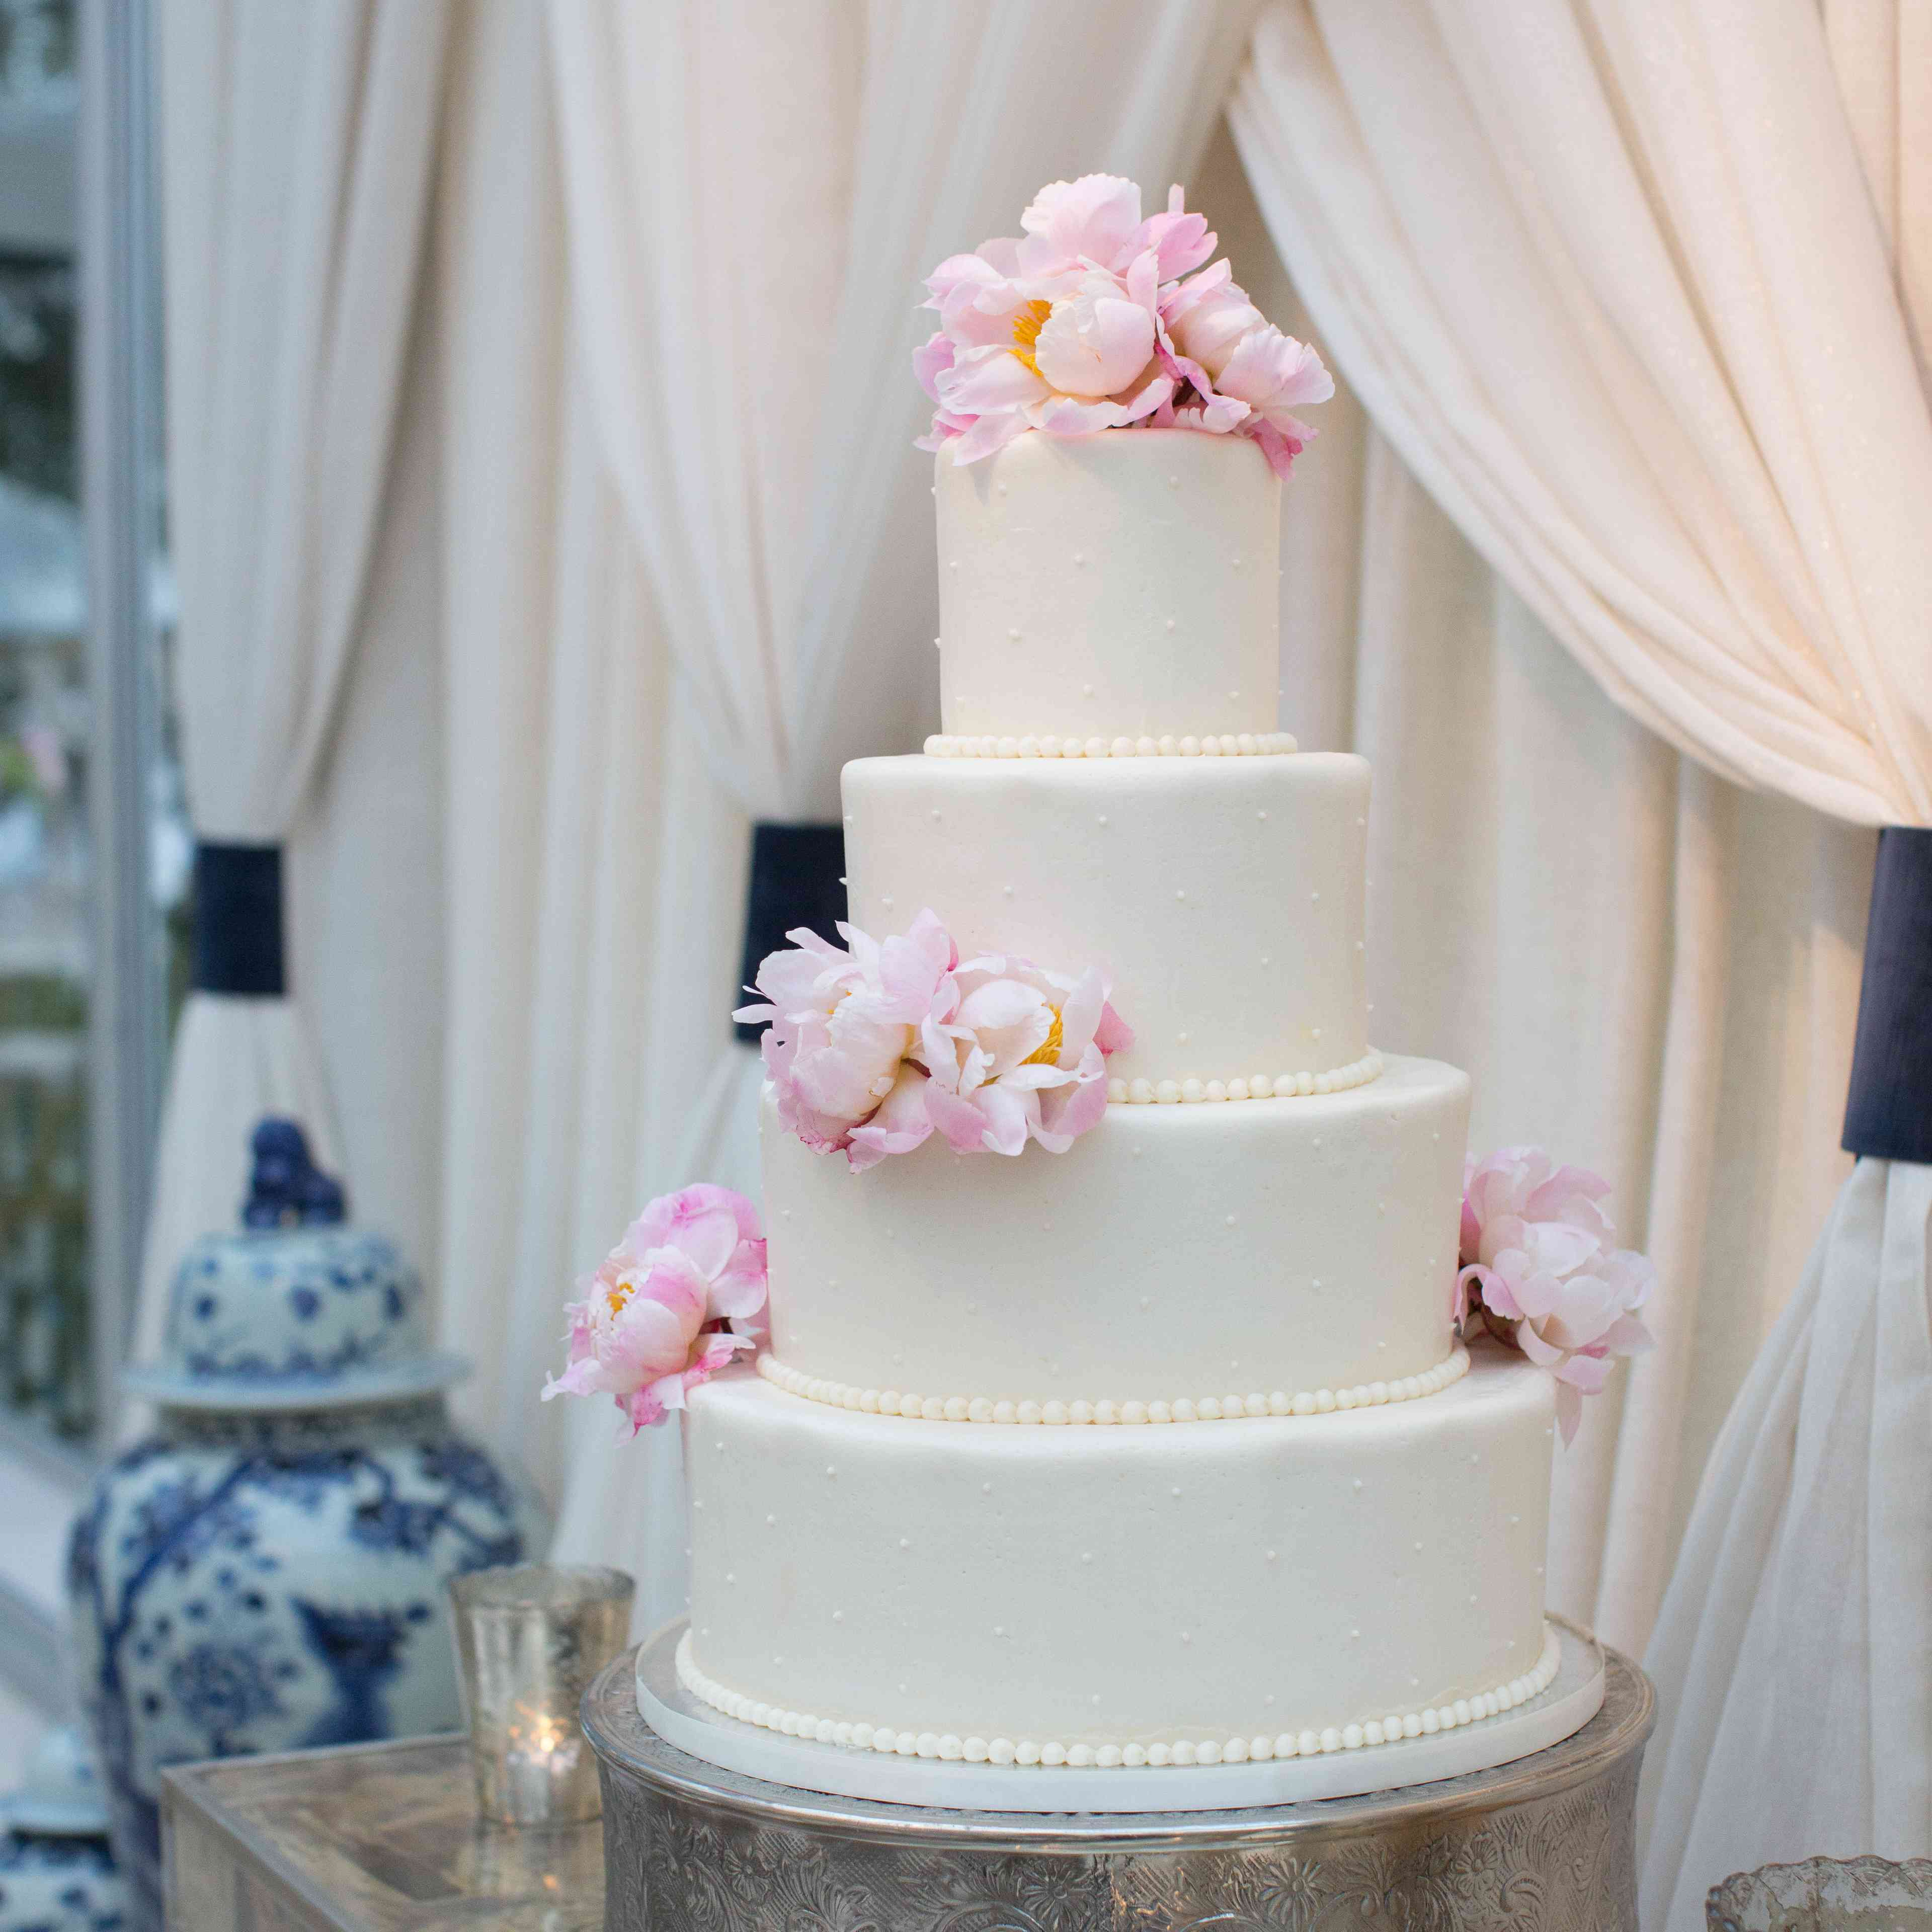 <p>White Wedding Cake with Pink Flowers</p><br><br>